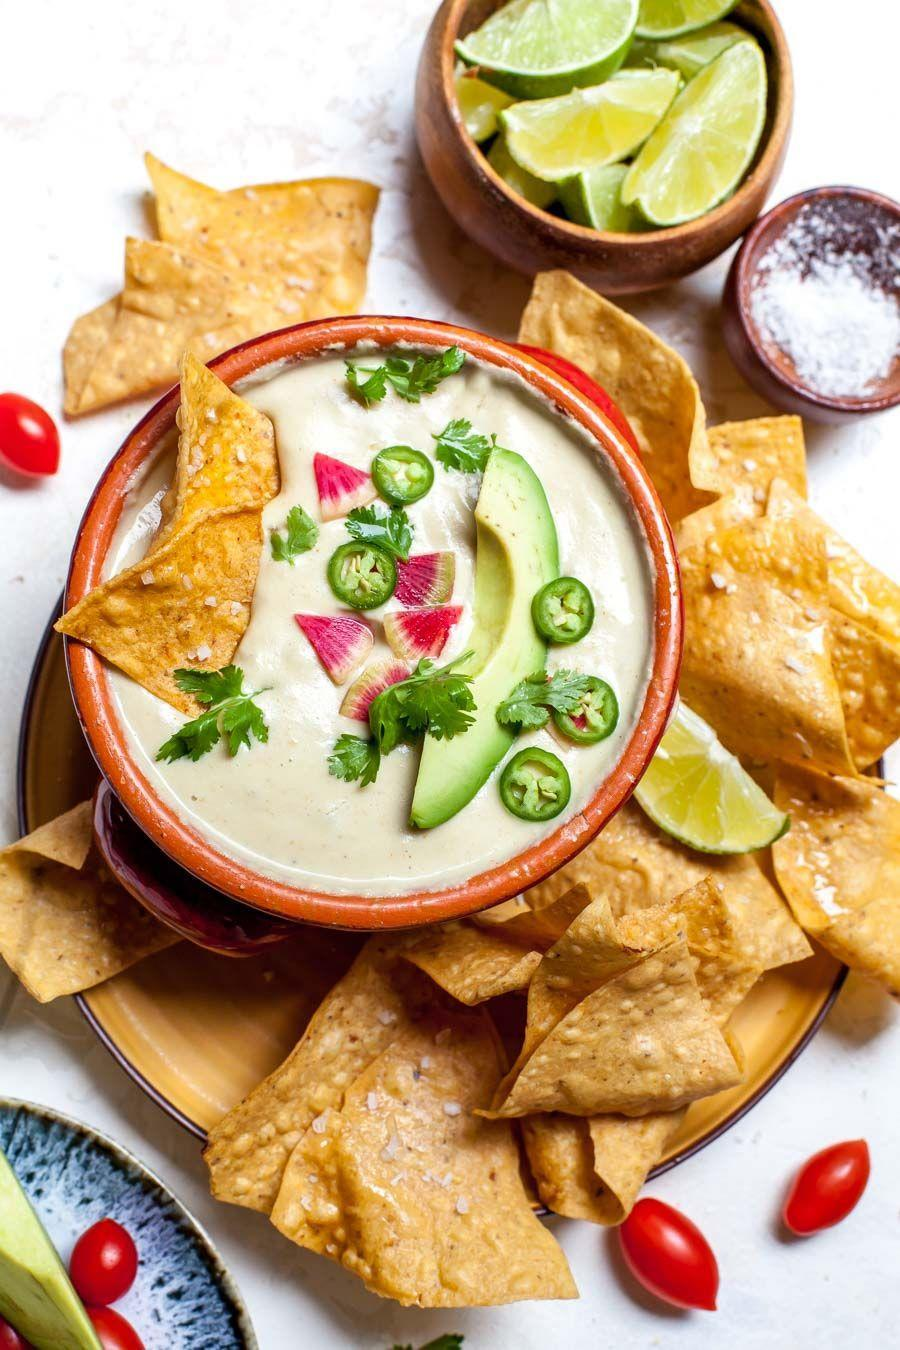 """<p>Fear not if you're on a dairy-free diet. This vegan queso is here to save the day (and your tacos and chips). </p><p><strong><em>Get the recipe at <a href=""""https://dishingouthealth.com/vegan-queso-dip-with-green-chiles/"""" rel=""""nofollow noopener"""" target=""""_blank"""" data-ylk=""""slk:Dishing Out Health."""" class=""""link rapid-noclick-resp"""">Dishing Out Health.</a></em></strong></p>"""